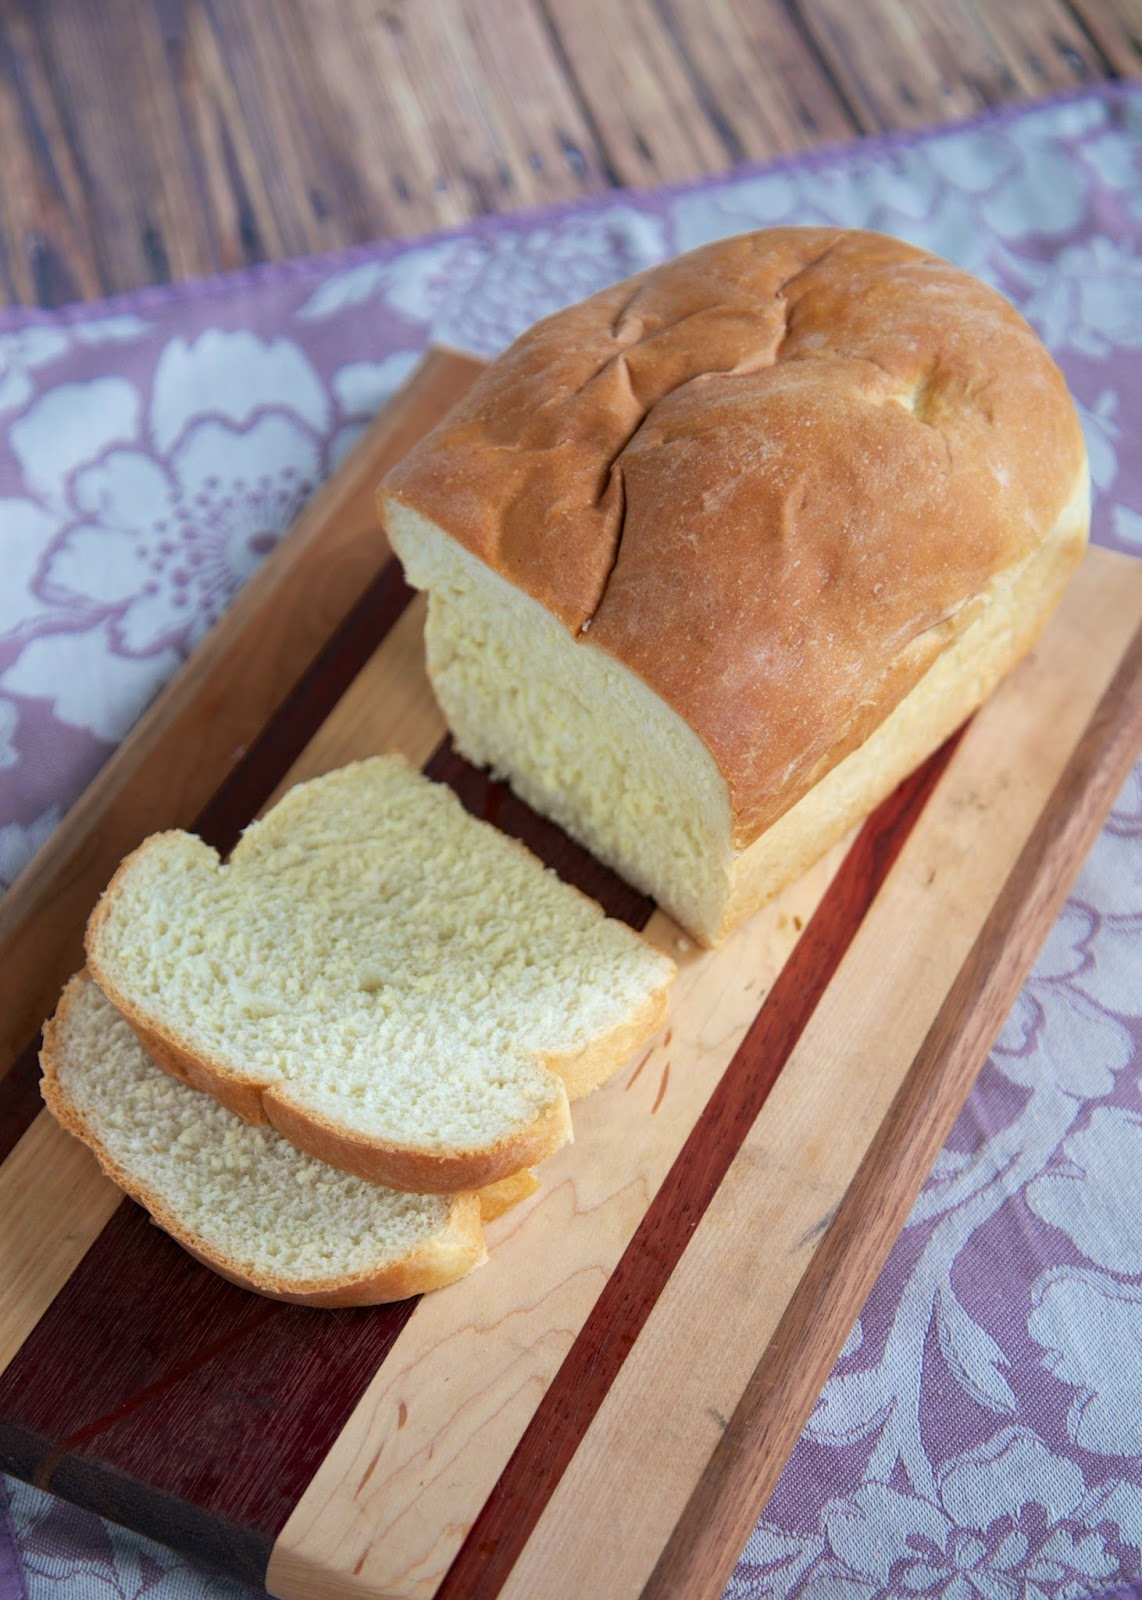 Amish White Bread - easy homemade bread recipe that tastes DELICIOUS!!! Recipe makes two loaves. Can eat one and freezer one for later. Water, sugar, yeast, salt, oil and flour. Ready to eat in about 2 hours!! #bread #homemadebread